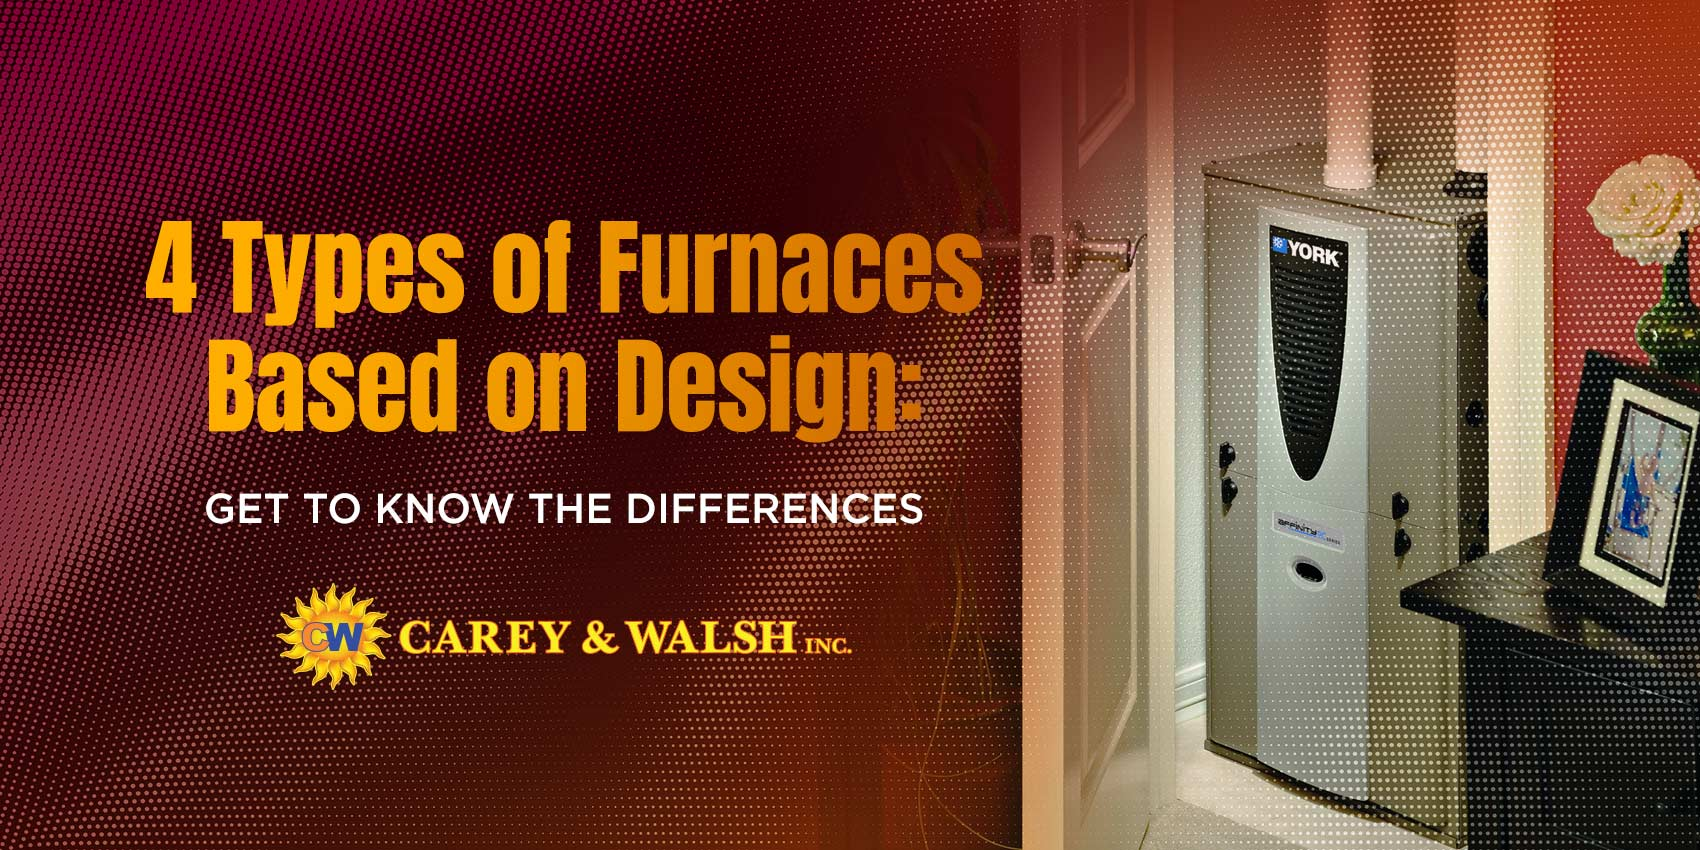 4 Types of Furnaces Based on Design: Get to Know the Differences